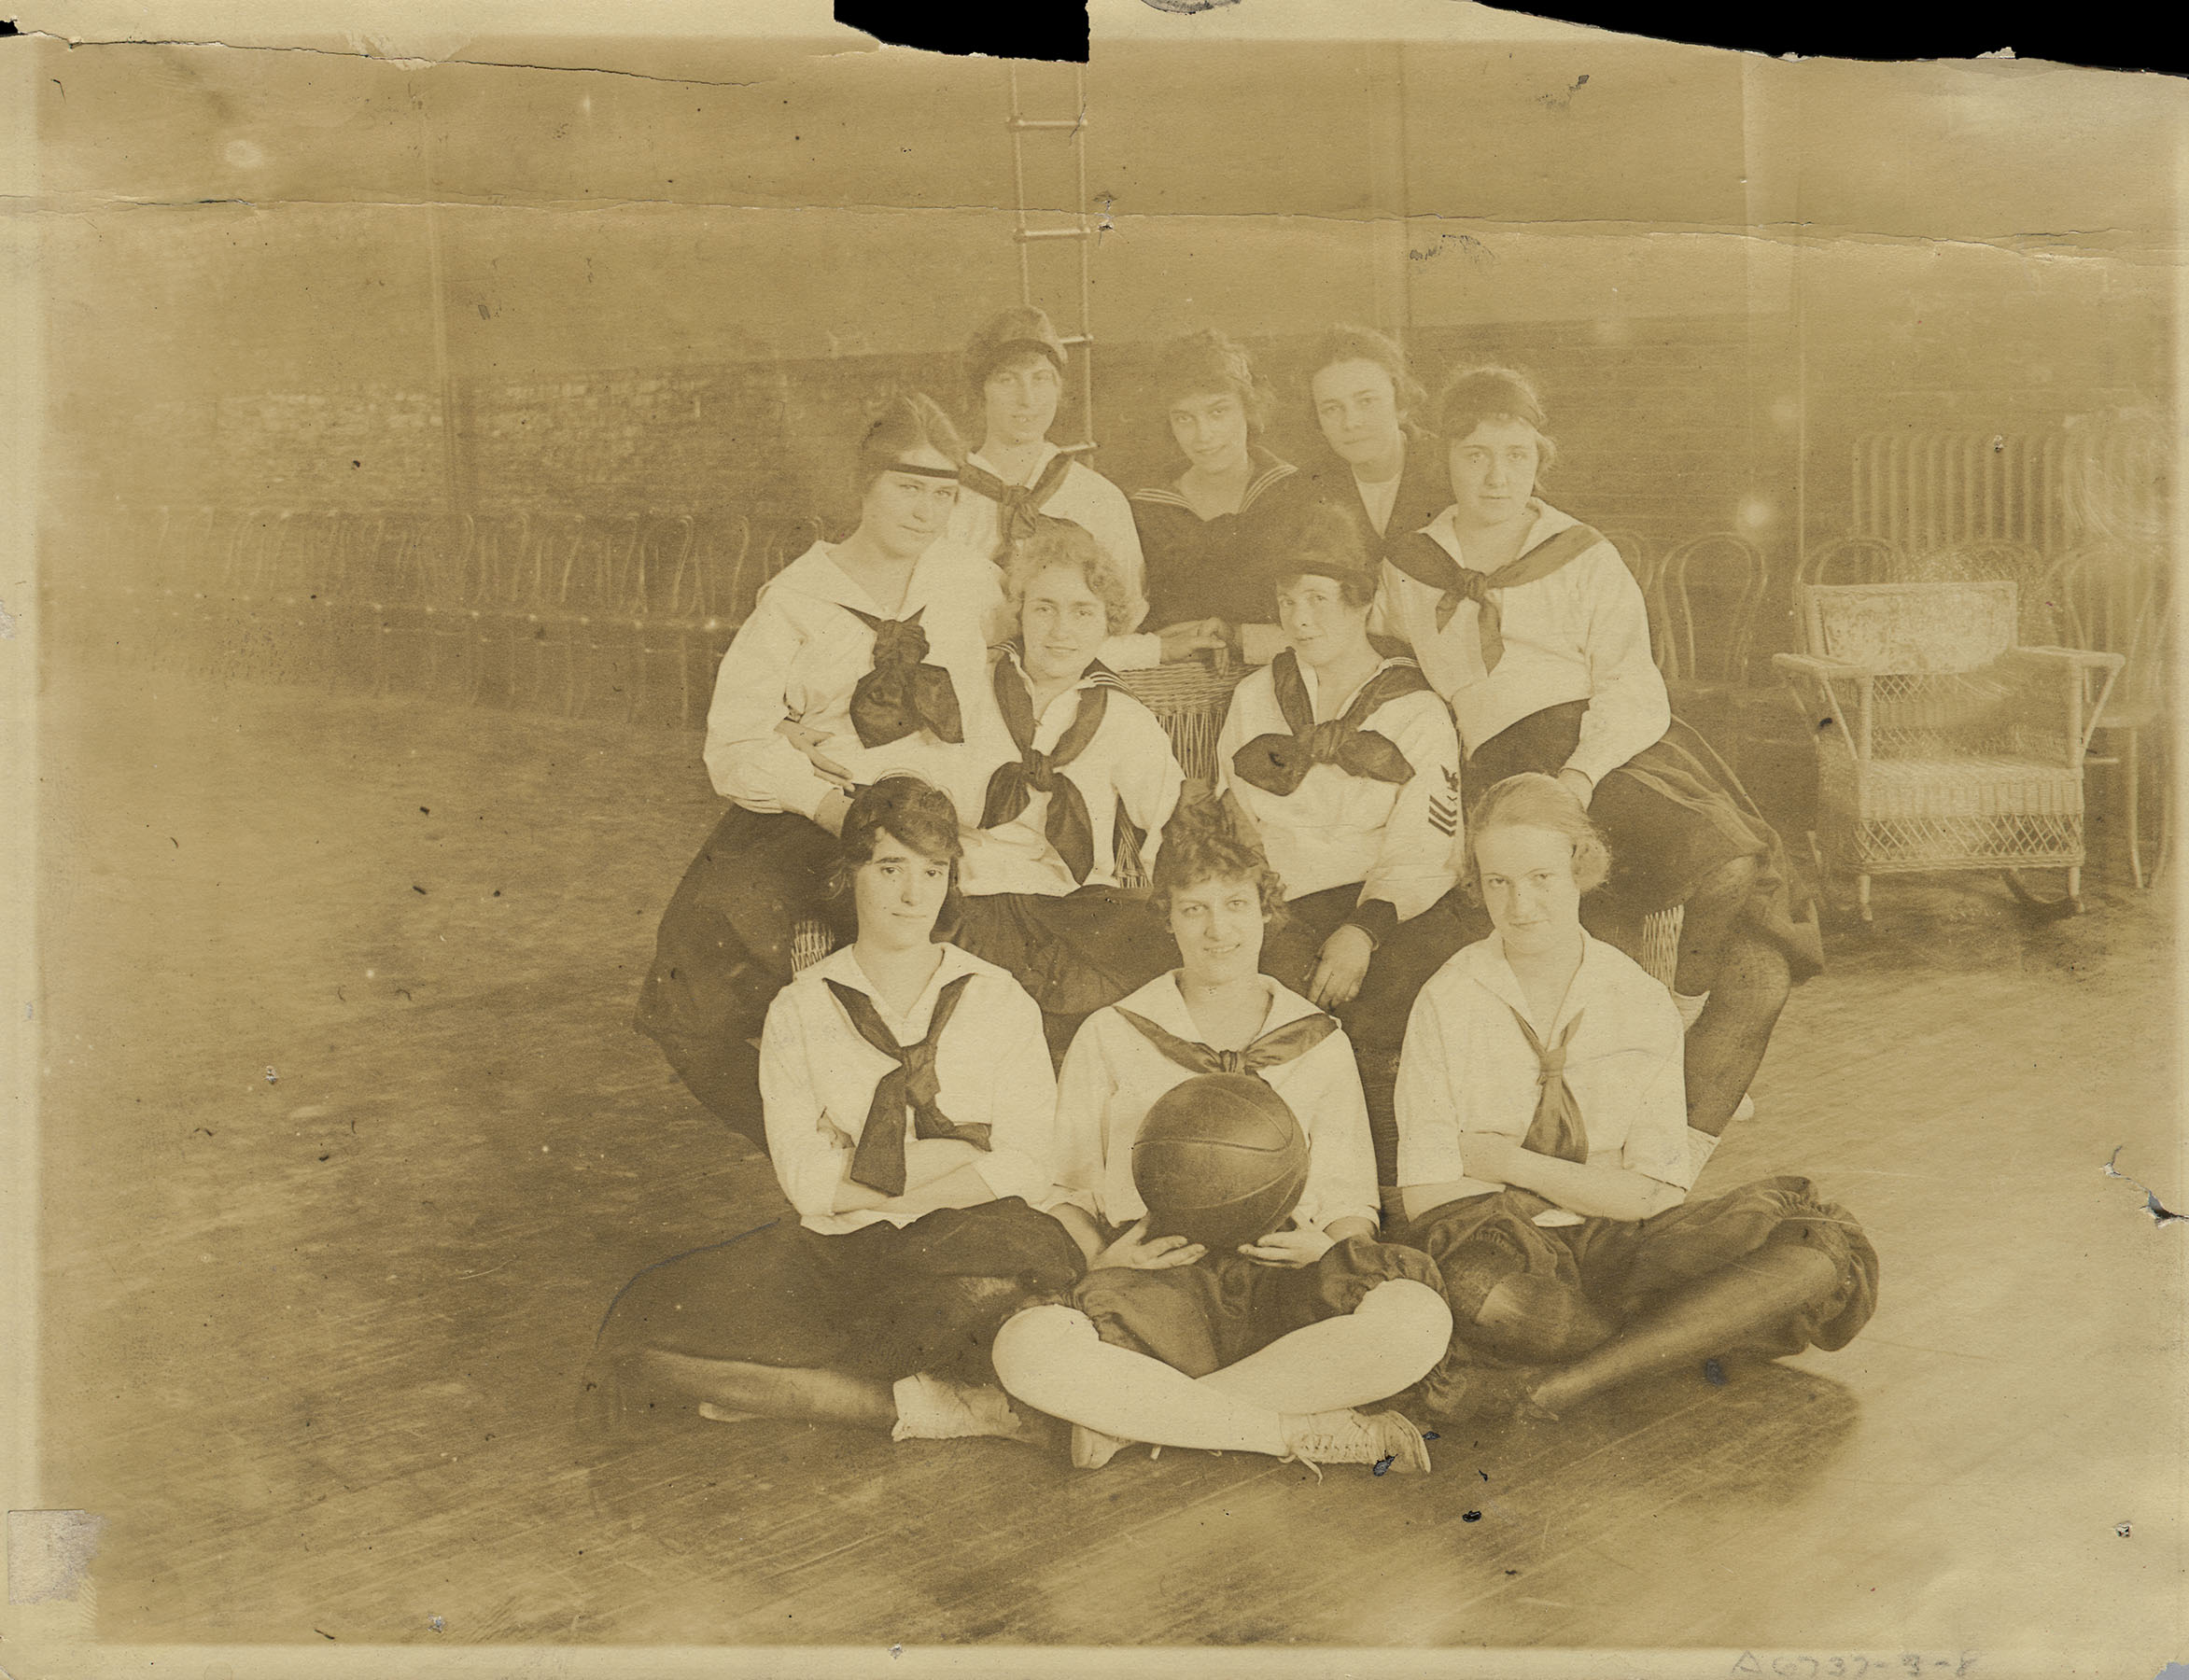 DPC_1424: Kings County Hospital: Nurses' basketball team posing for camera wearing their uniforms, ca. 1920. Department of Public Charities Collection, NYC Municipal Archives.